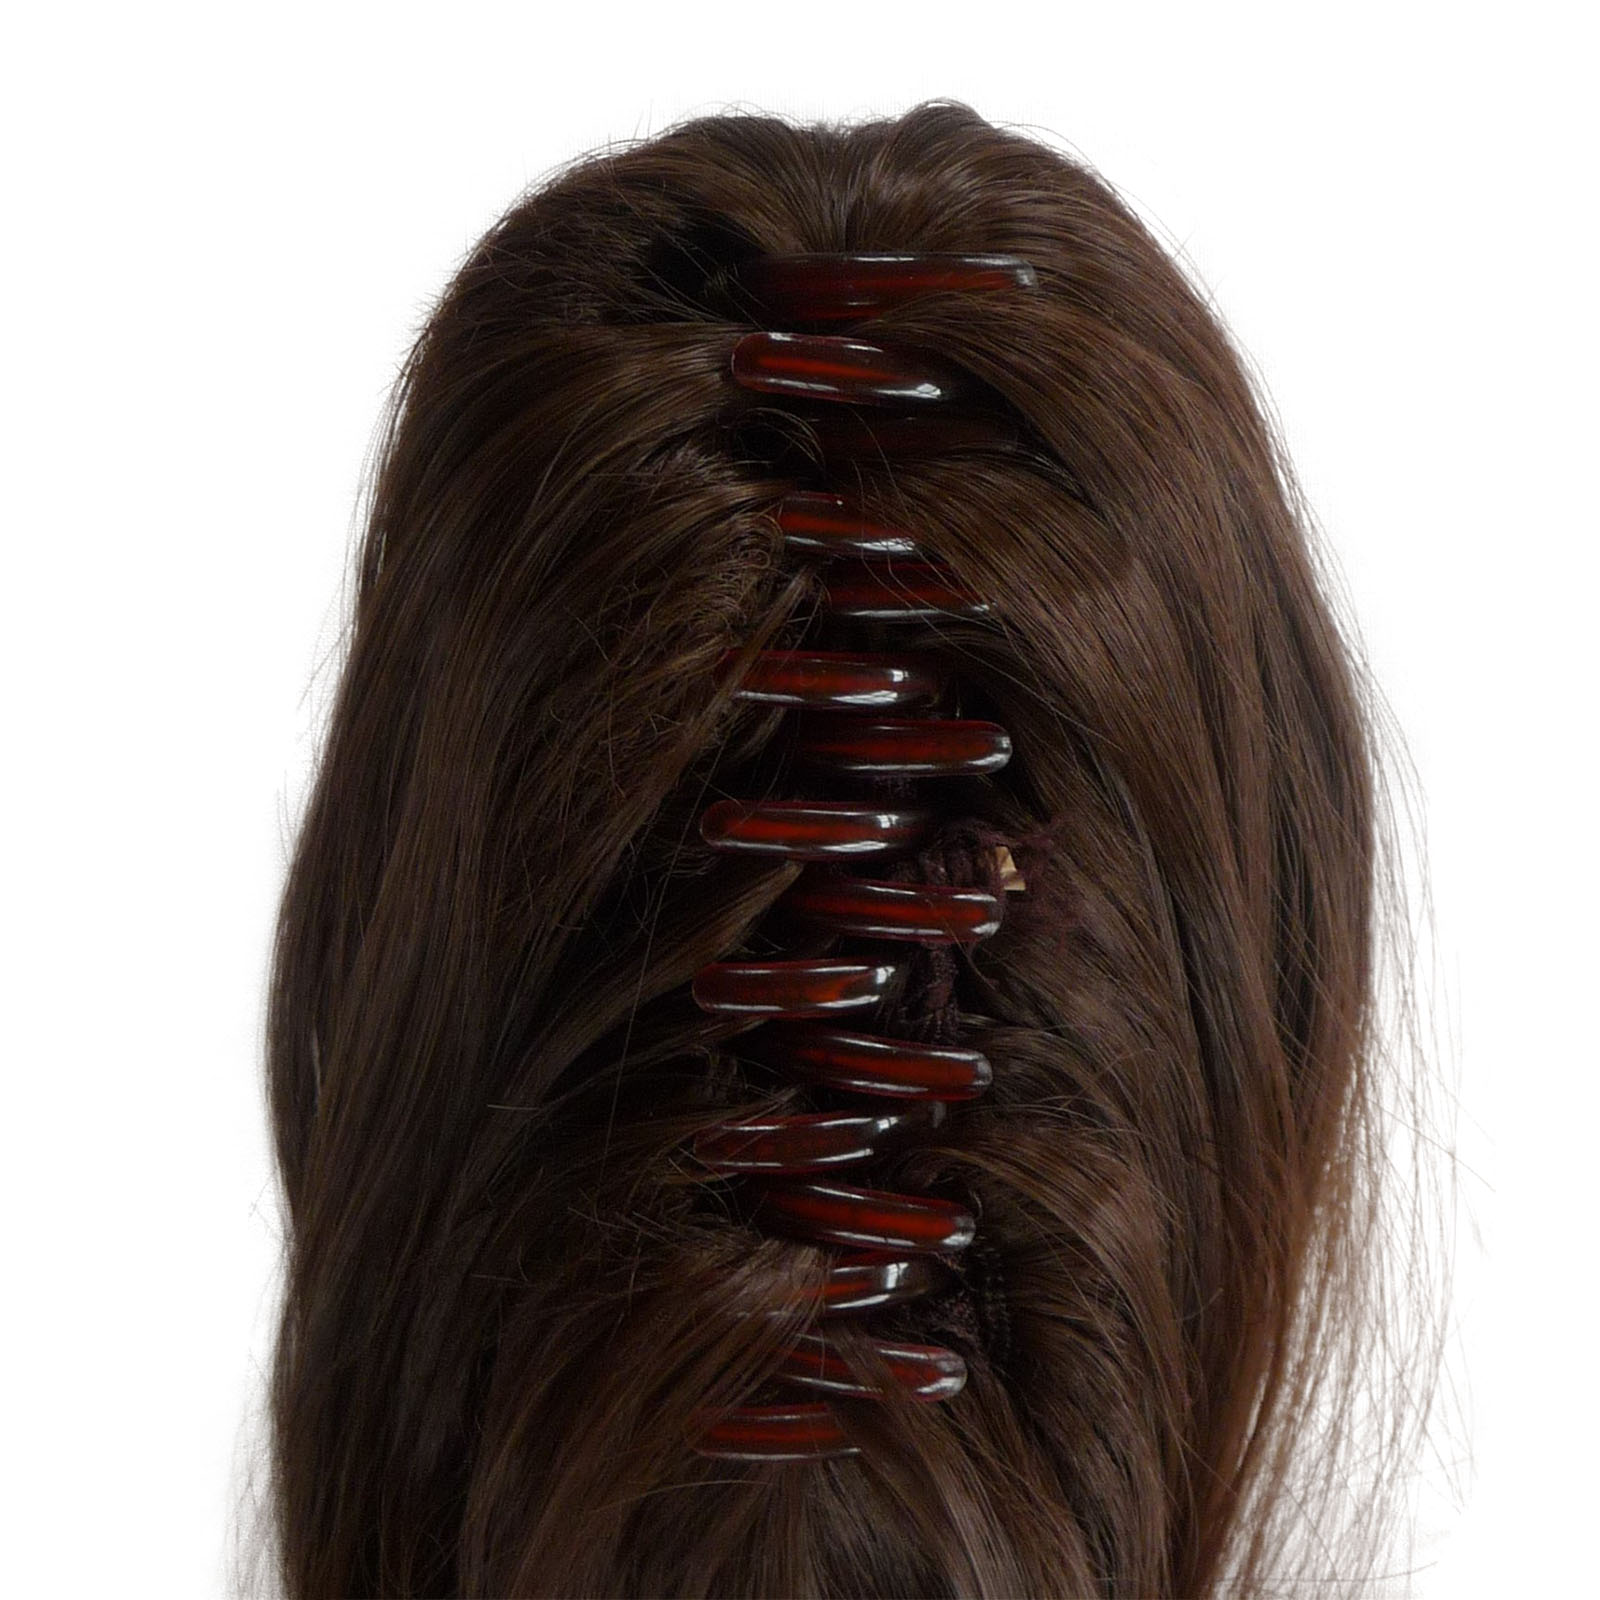 hair extension style ponytail clip in hair extensions burgundy reversible 4 4643